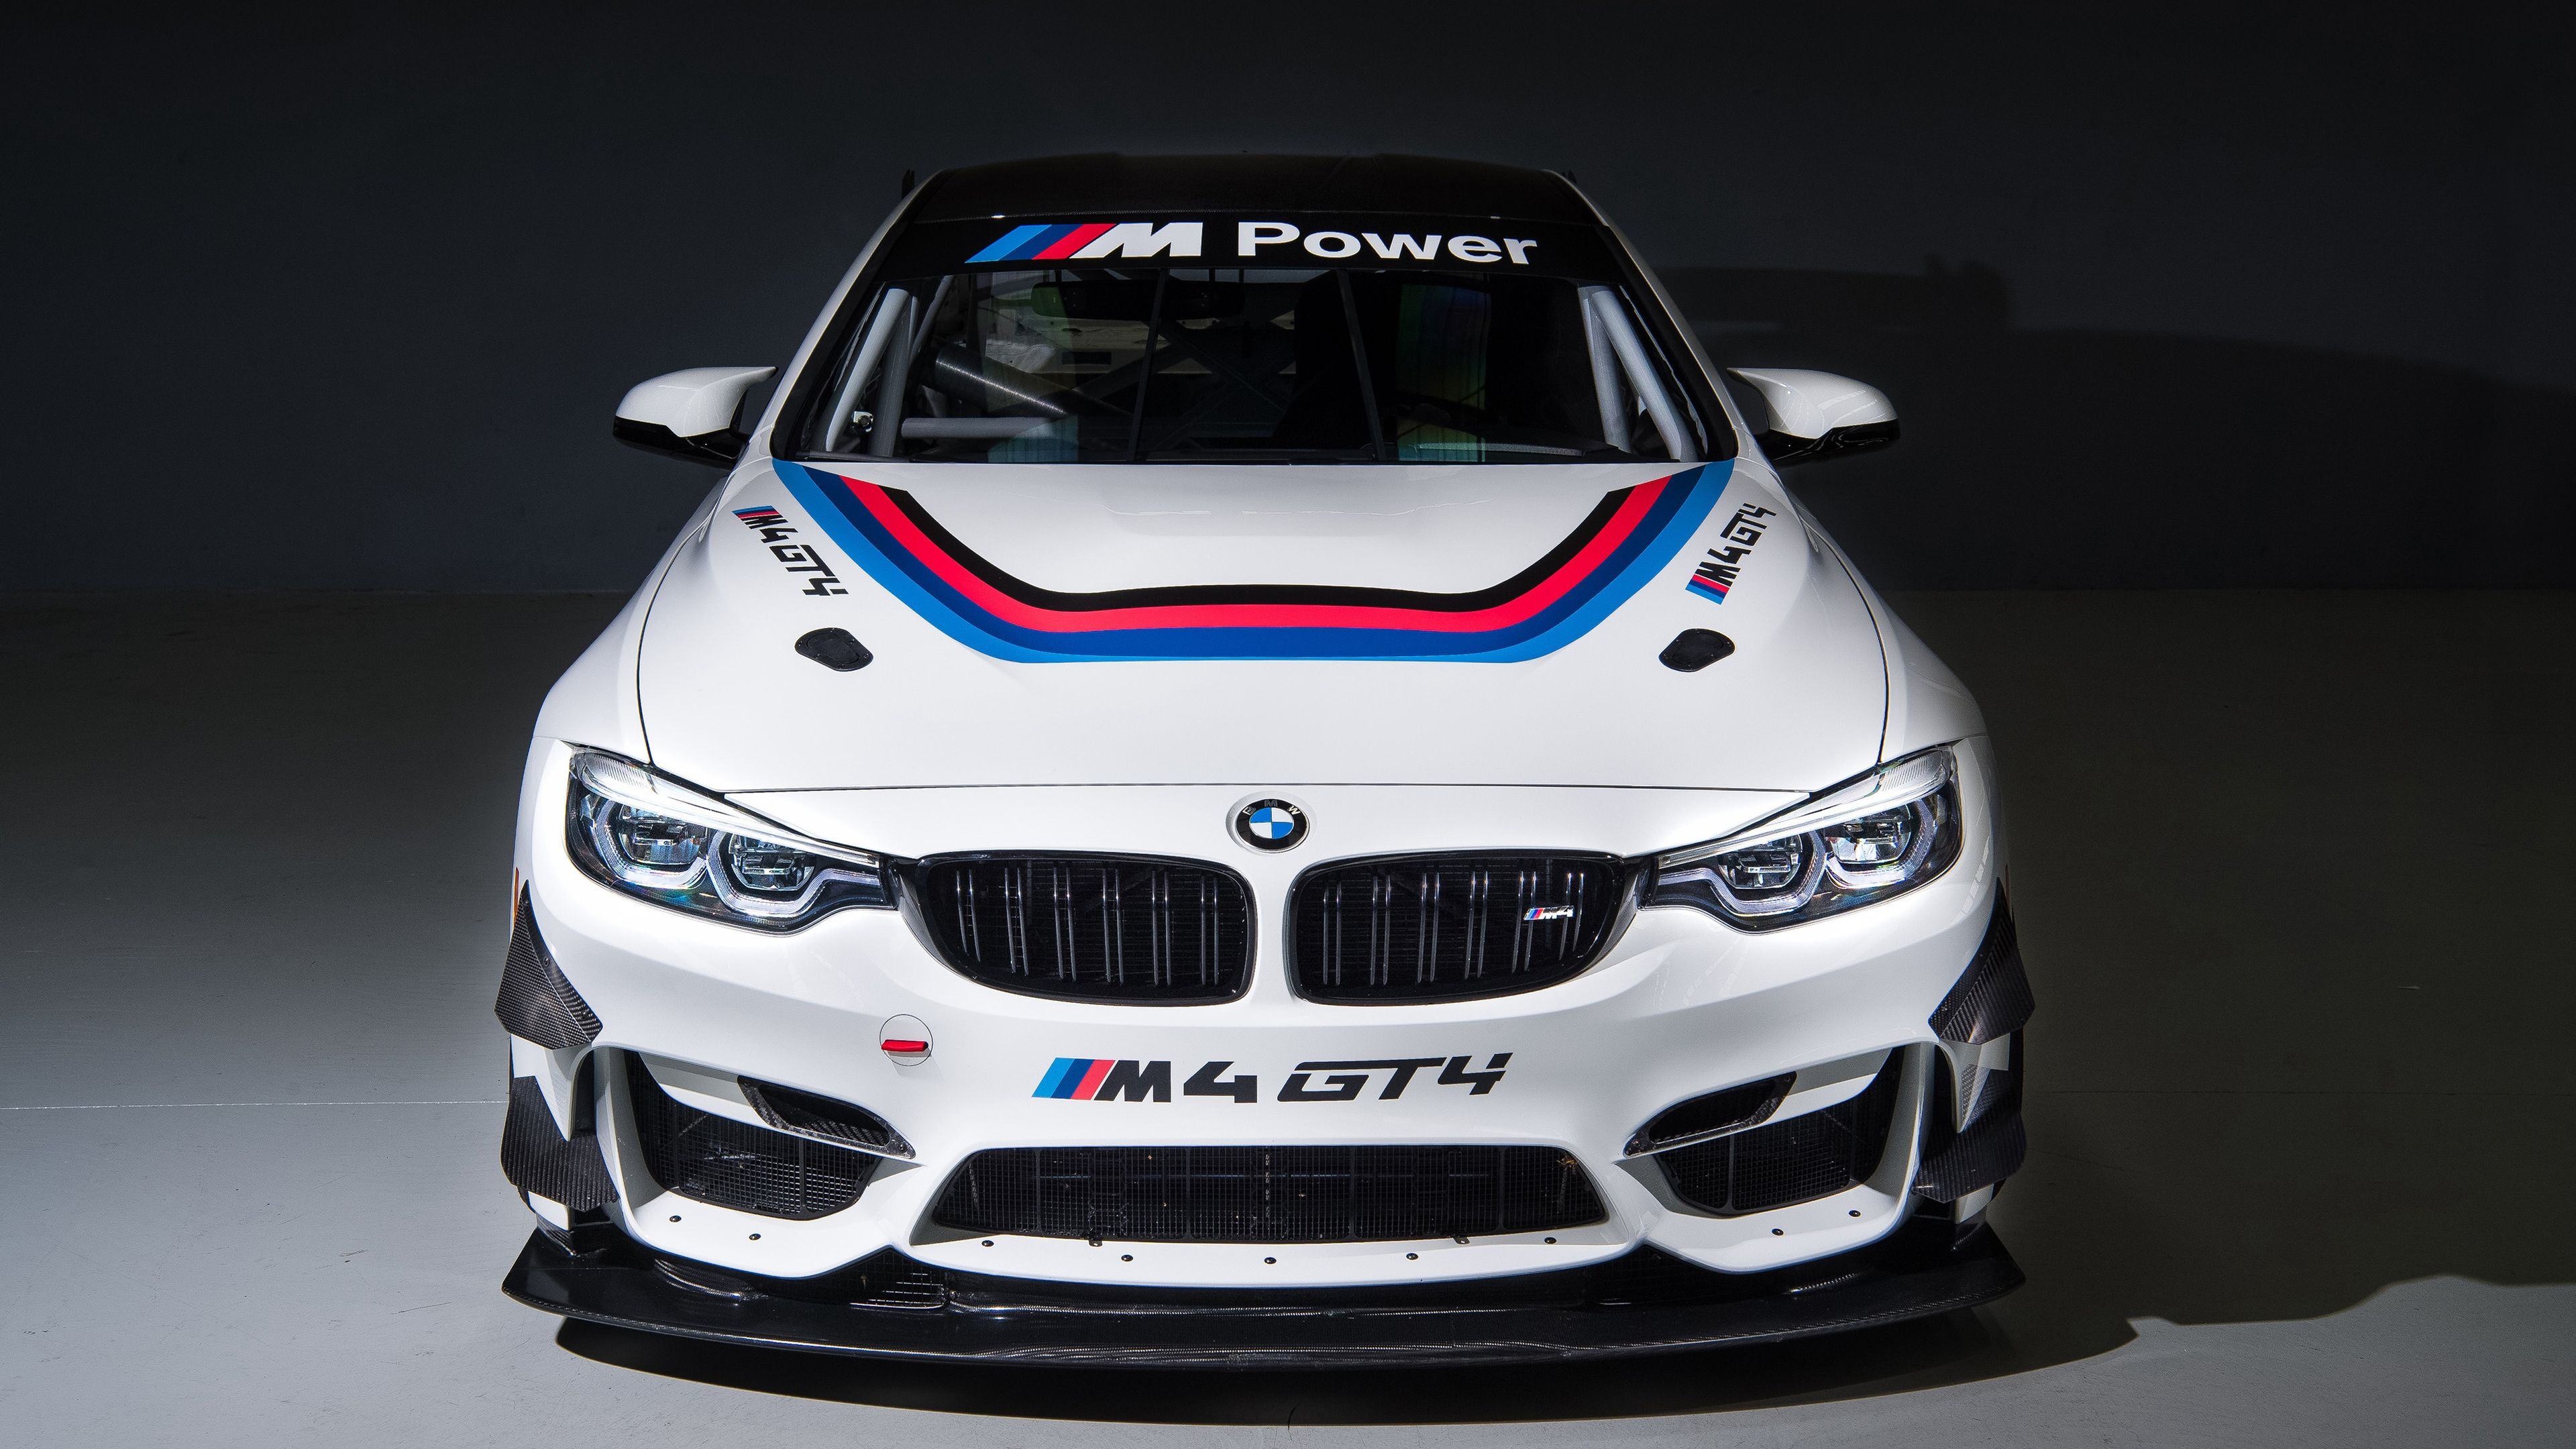 2018 Bmw M4 Gt4 Hd Wallpapers Gt Wallpapers Cars Wallpapers Bmw Wallpapers Bmw M4 Wallpapers 4k Wallpapers 2018 Cars Wallpapers Bmw M4 Bmw Bmw Wallpapers